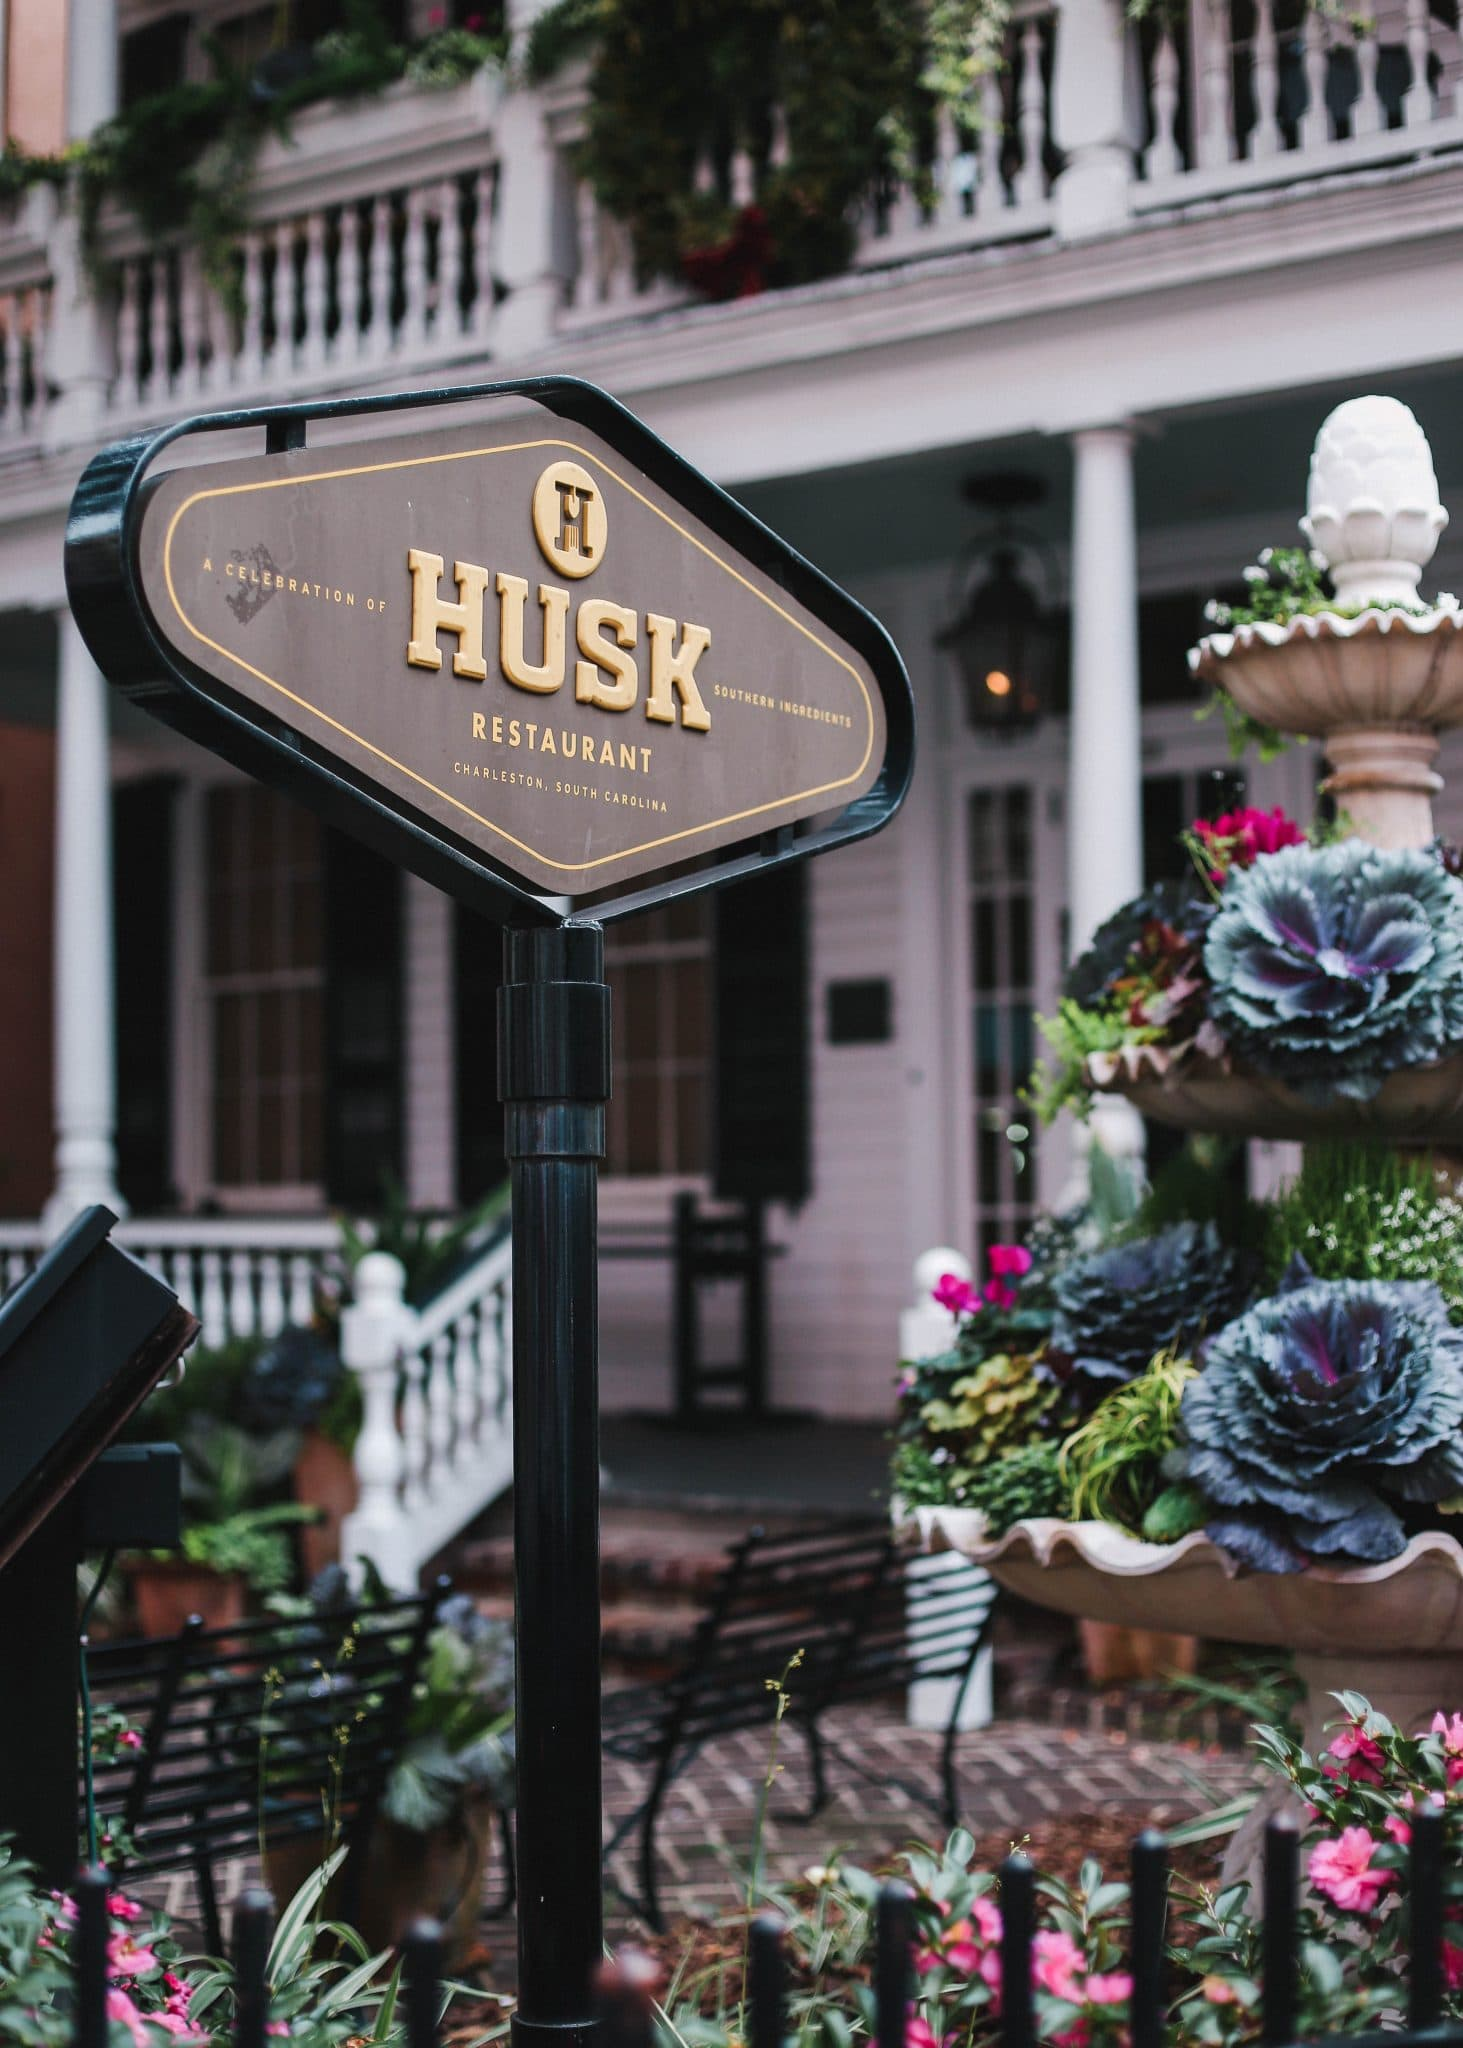 husk restaurant charleston, pretty in the pines blog, travel blog